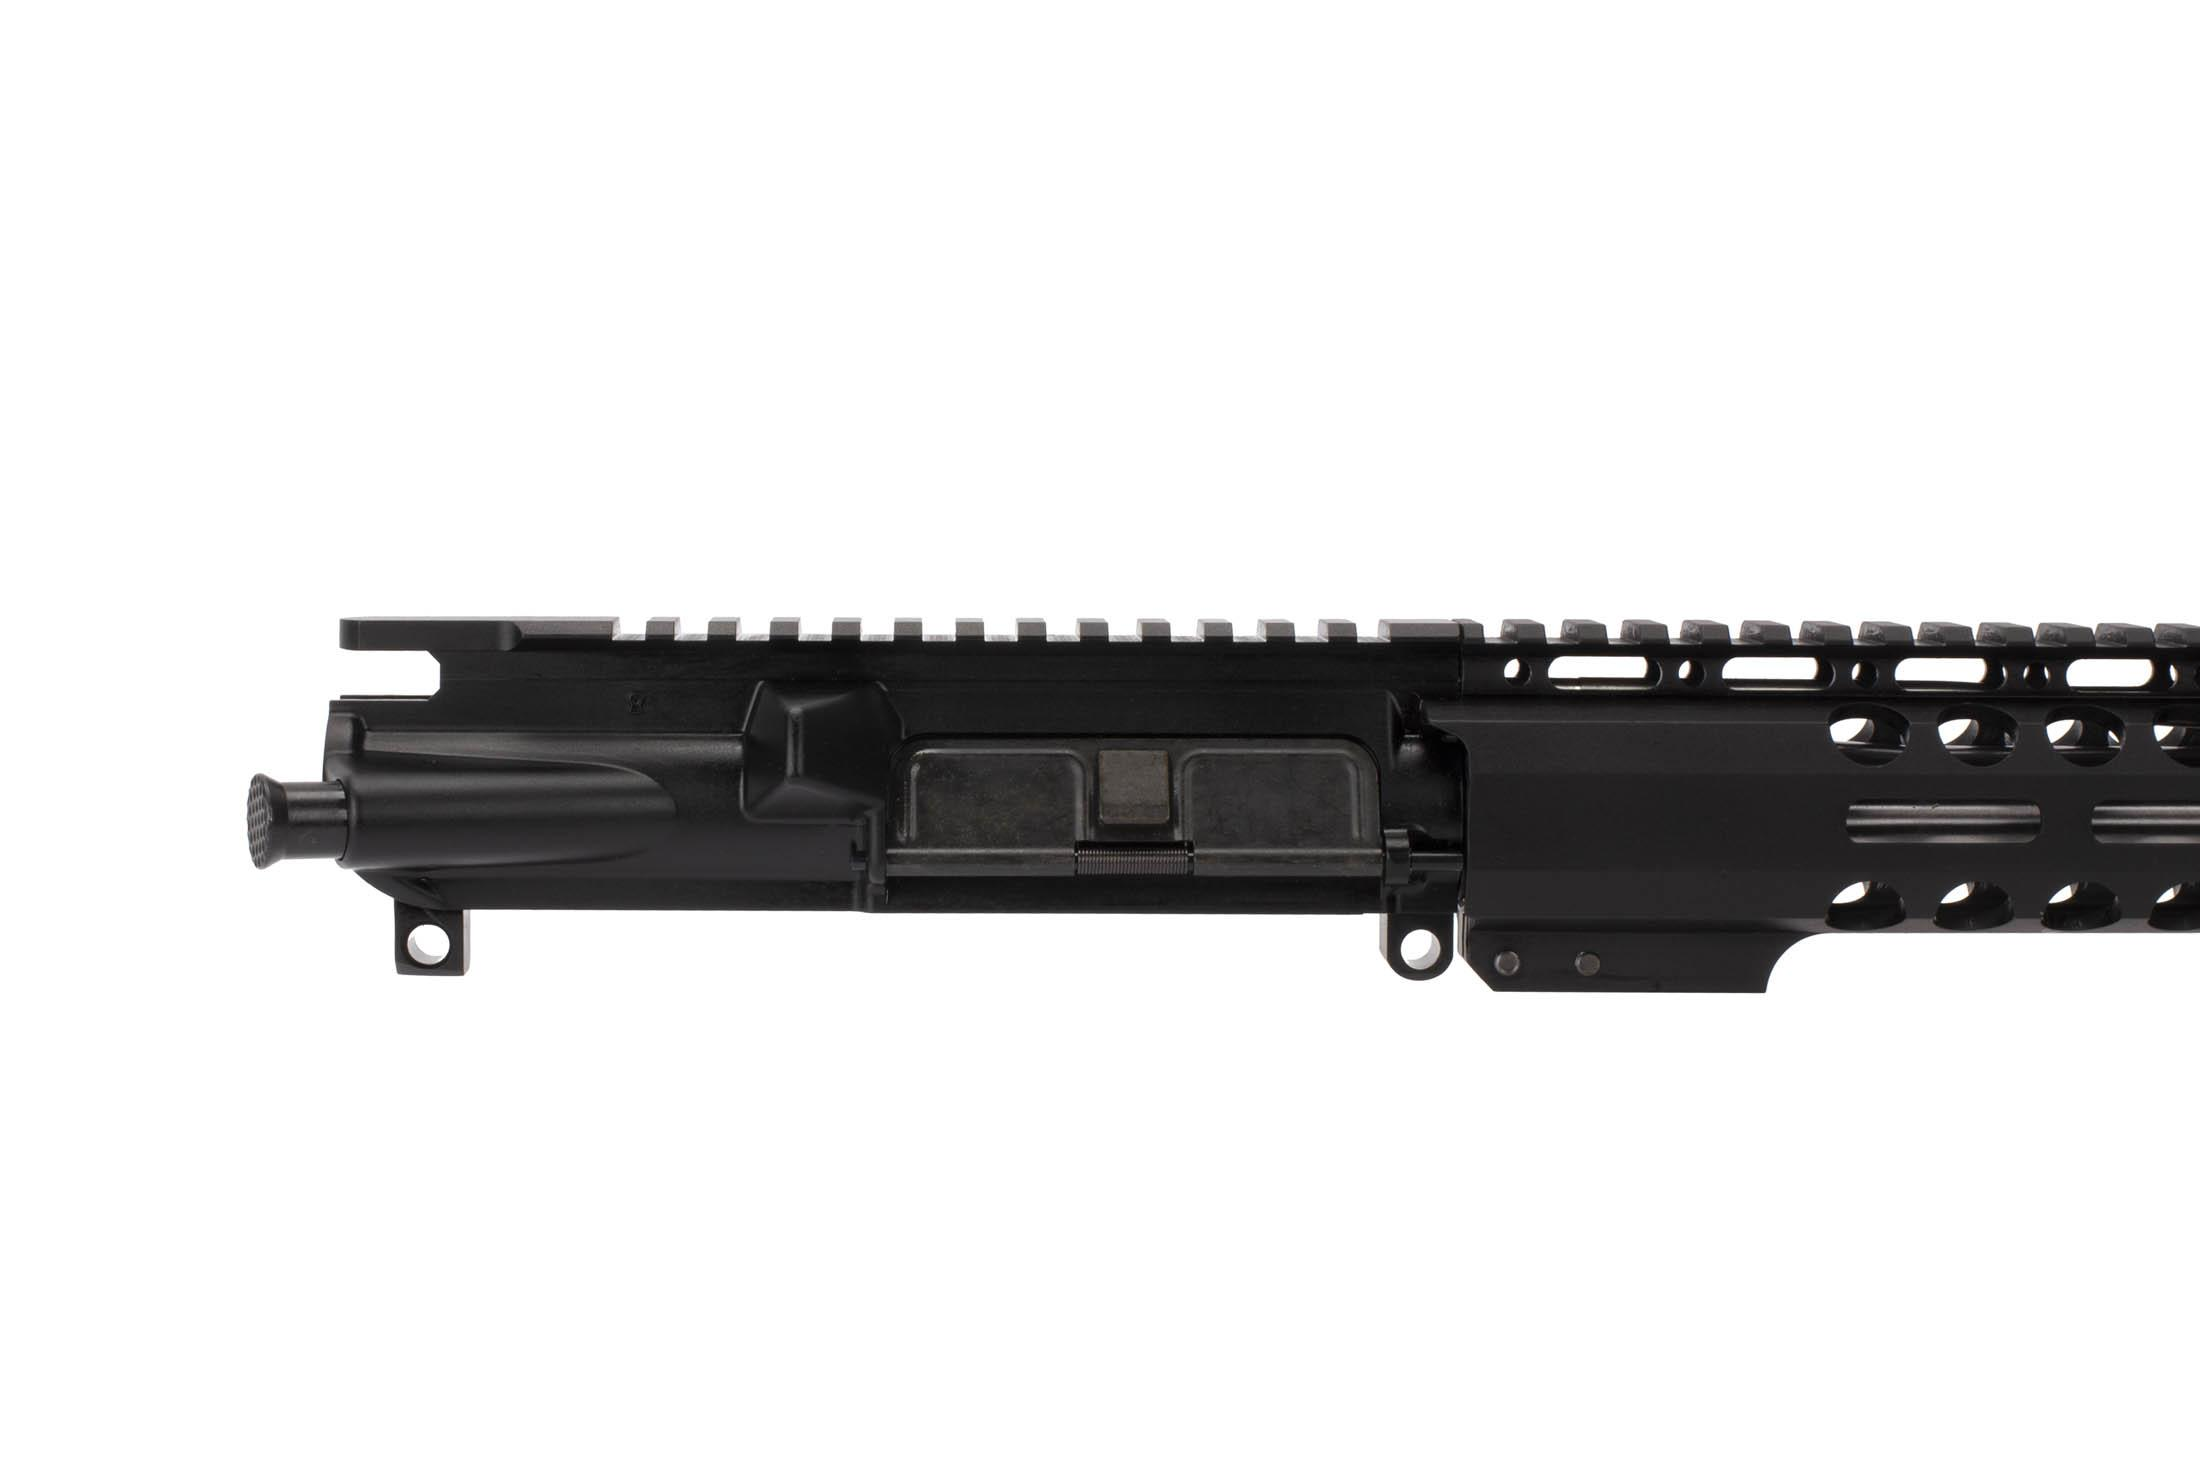 Radical Firearms 18in .223 Wylde pistol length AR-15 upper receiver fits standard MIL-SPEC lower receivers